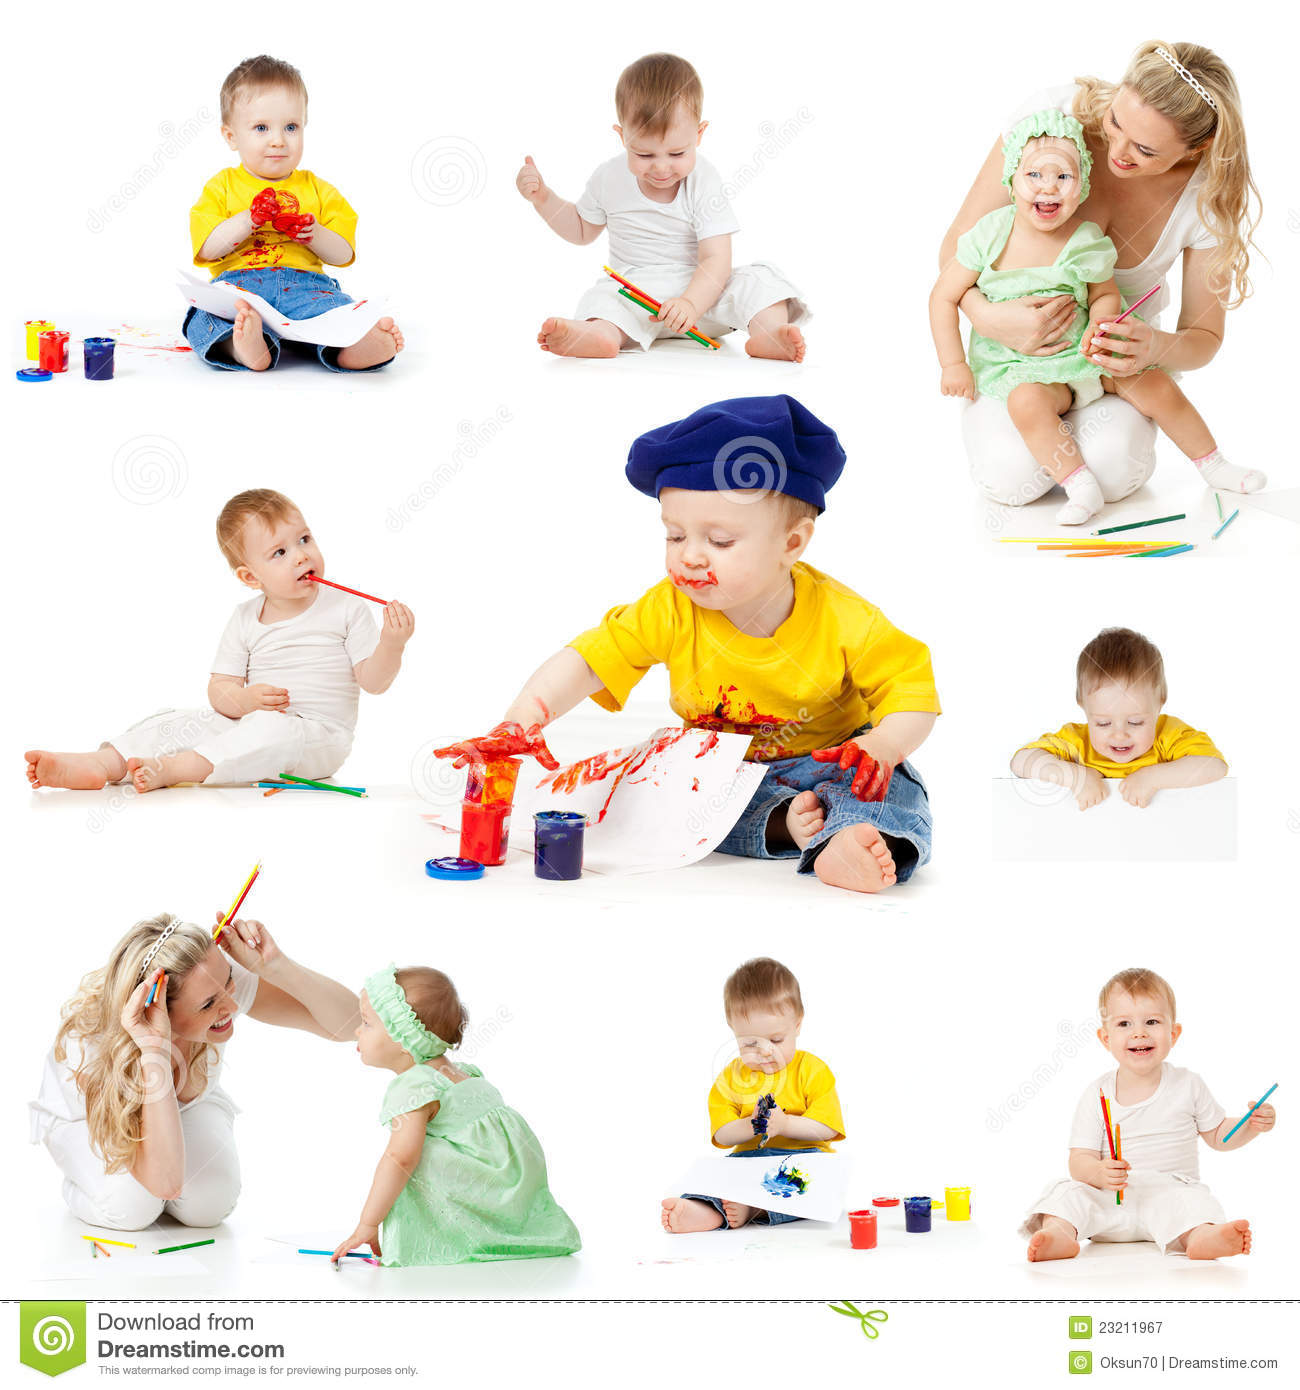 Children painting and drawing pencils